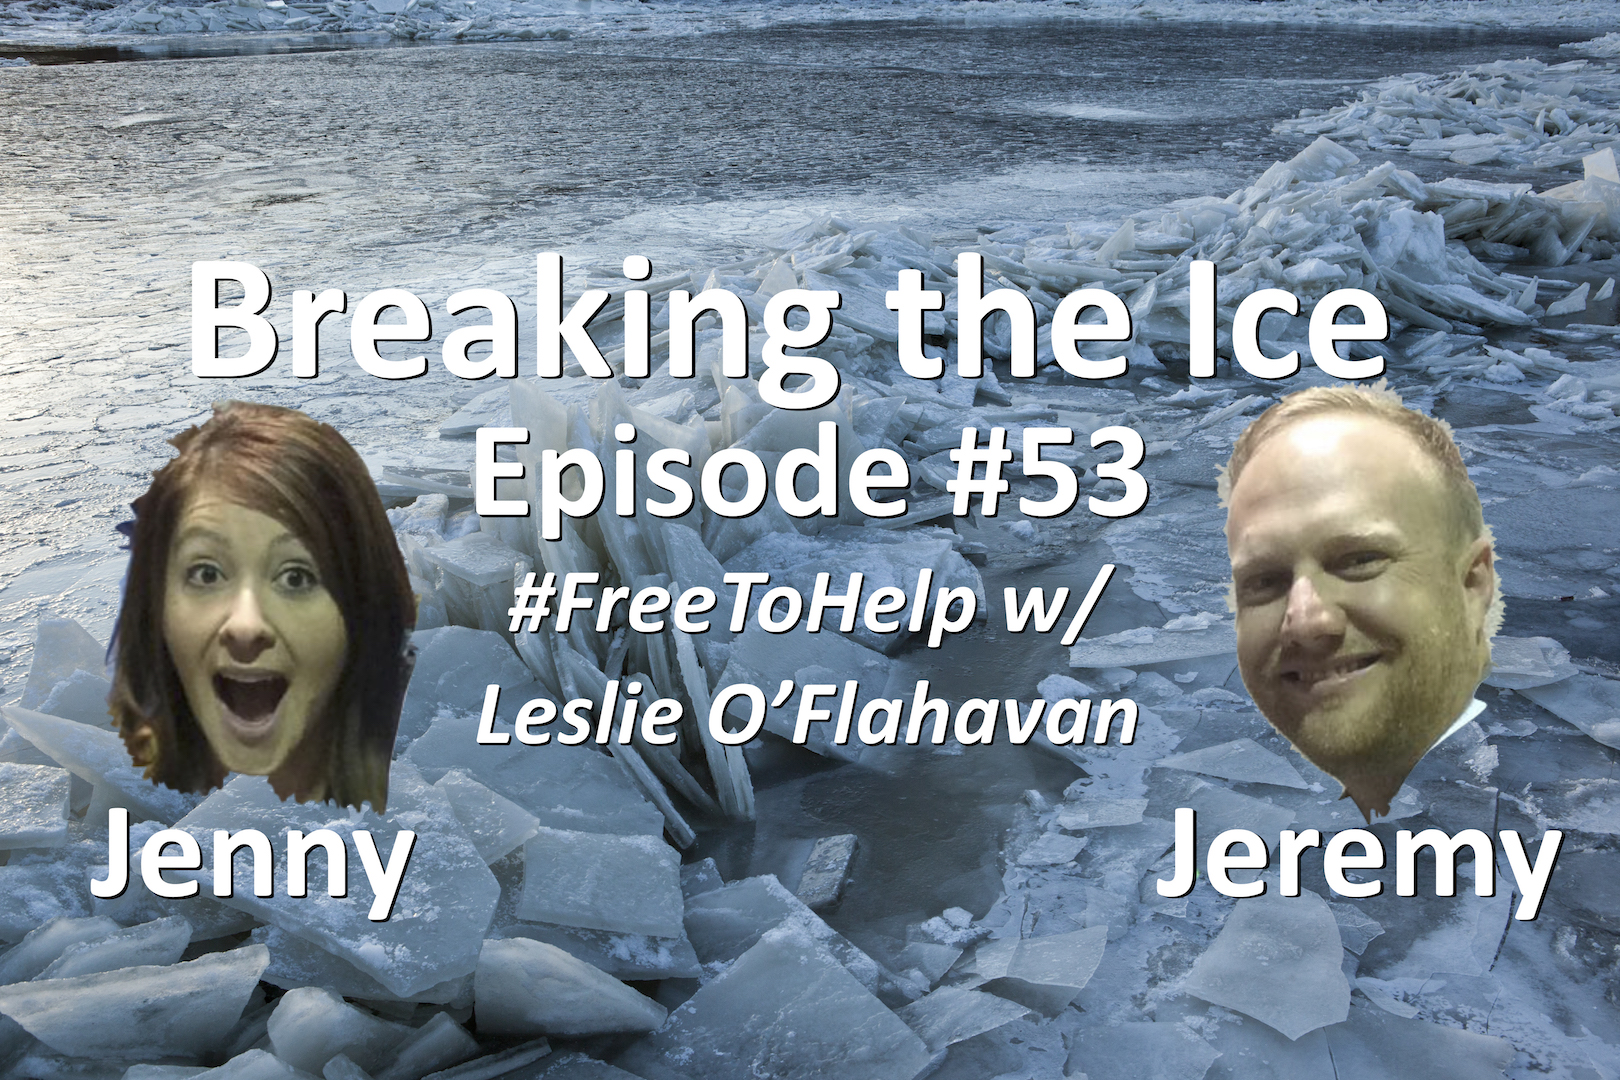 Breaking the Ice Episode #53: #FreeToHelp w/ Leslie O'Flahavan - Customer Service Life